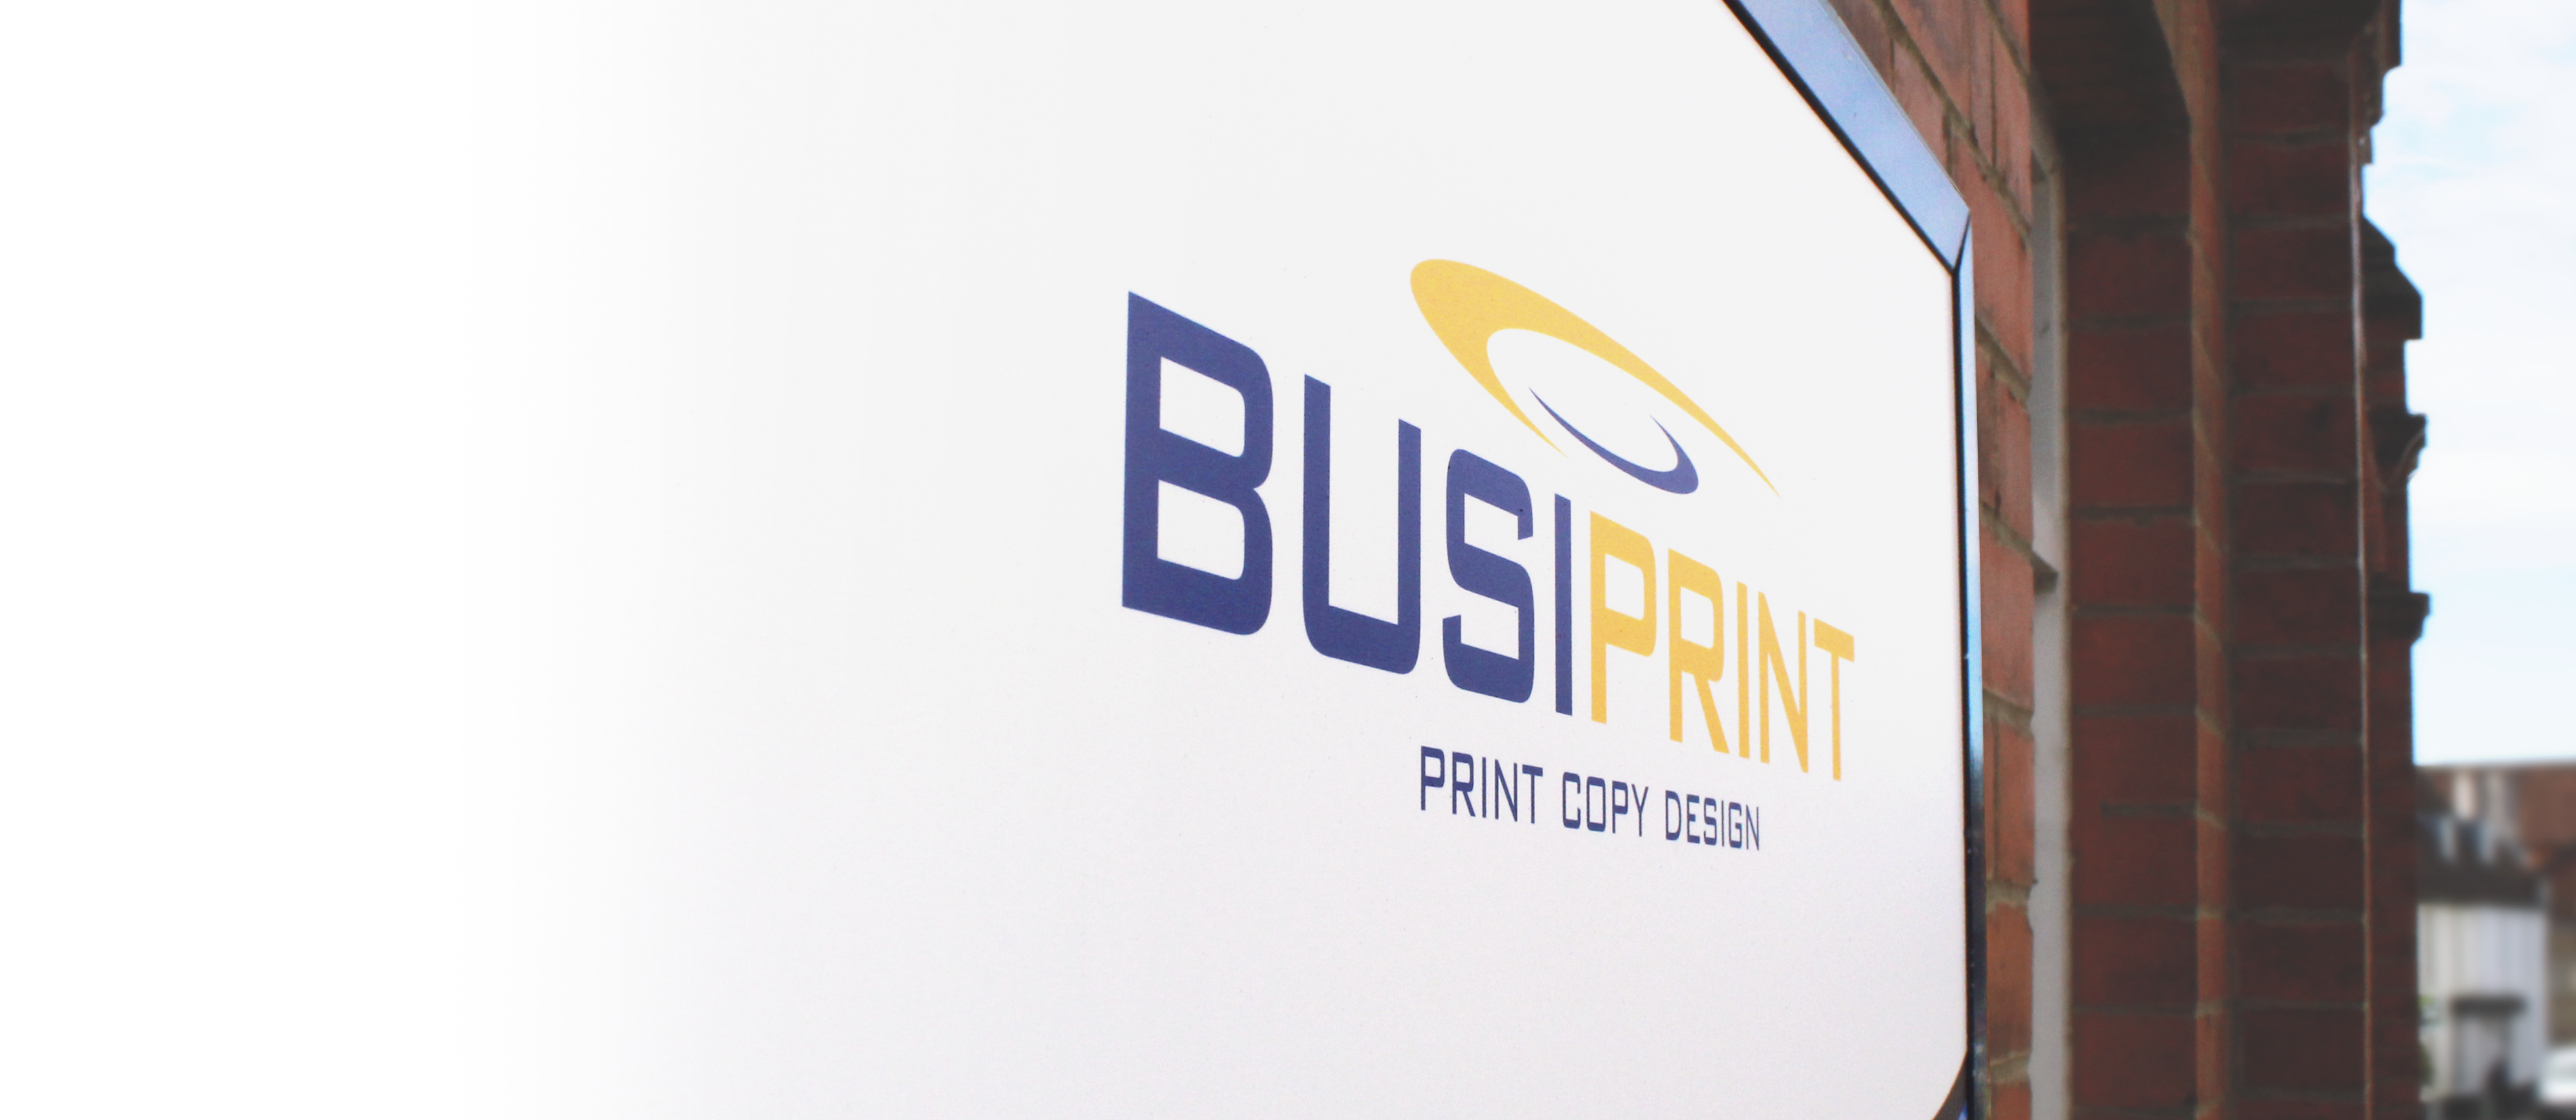 Busiprint sign and logo on sign